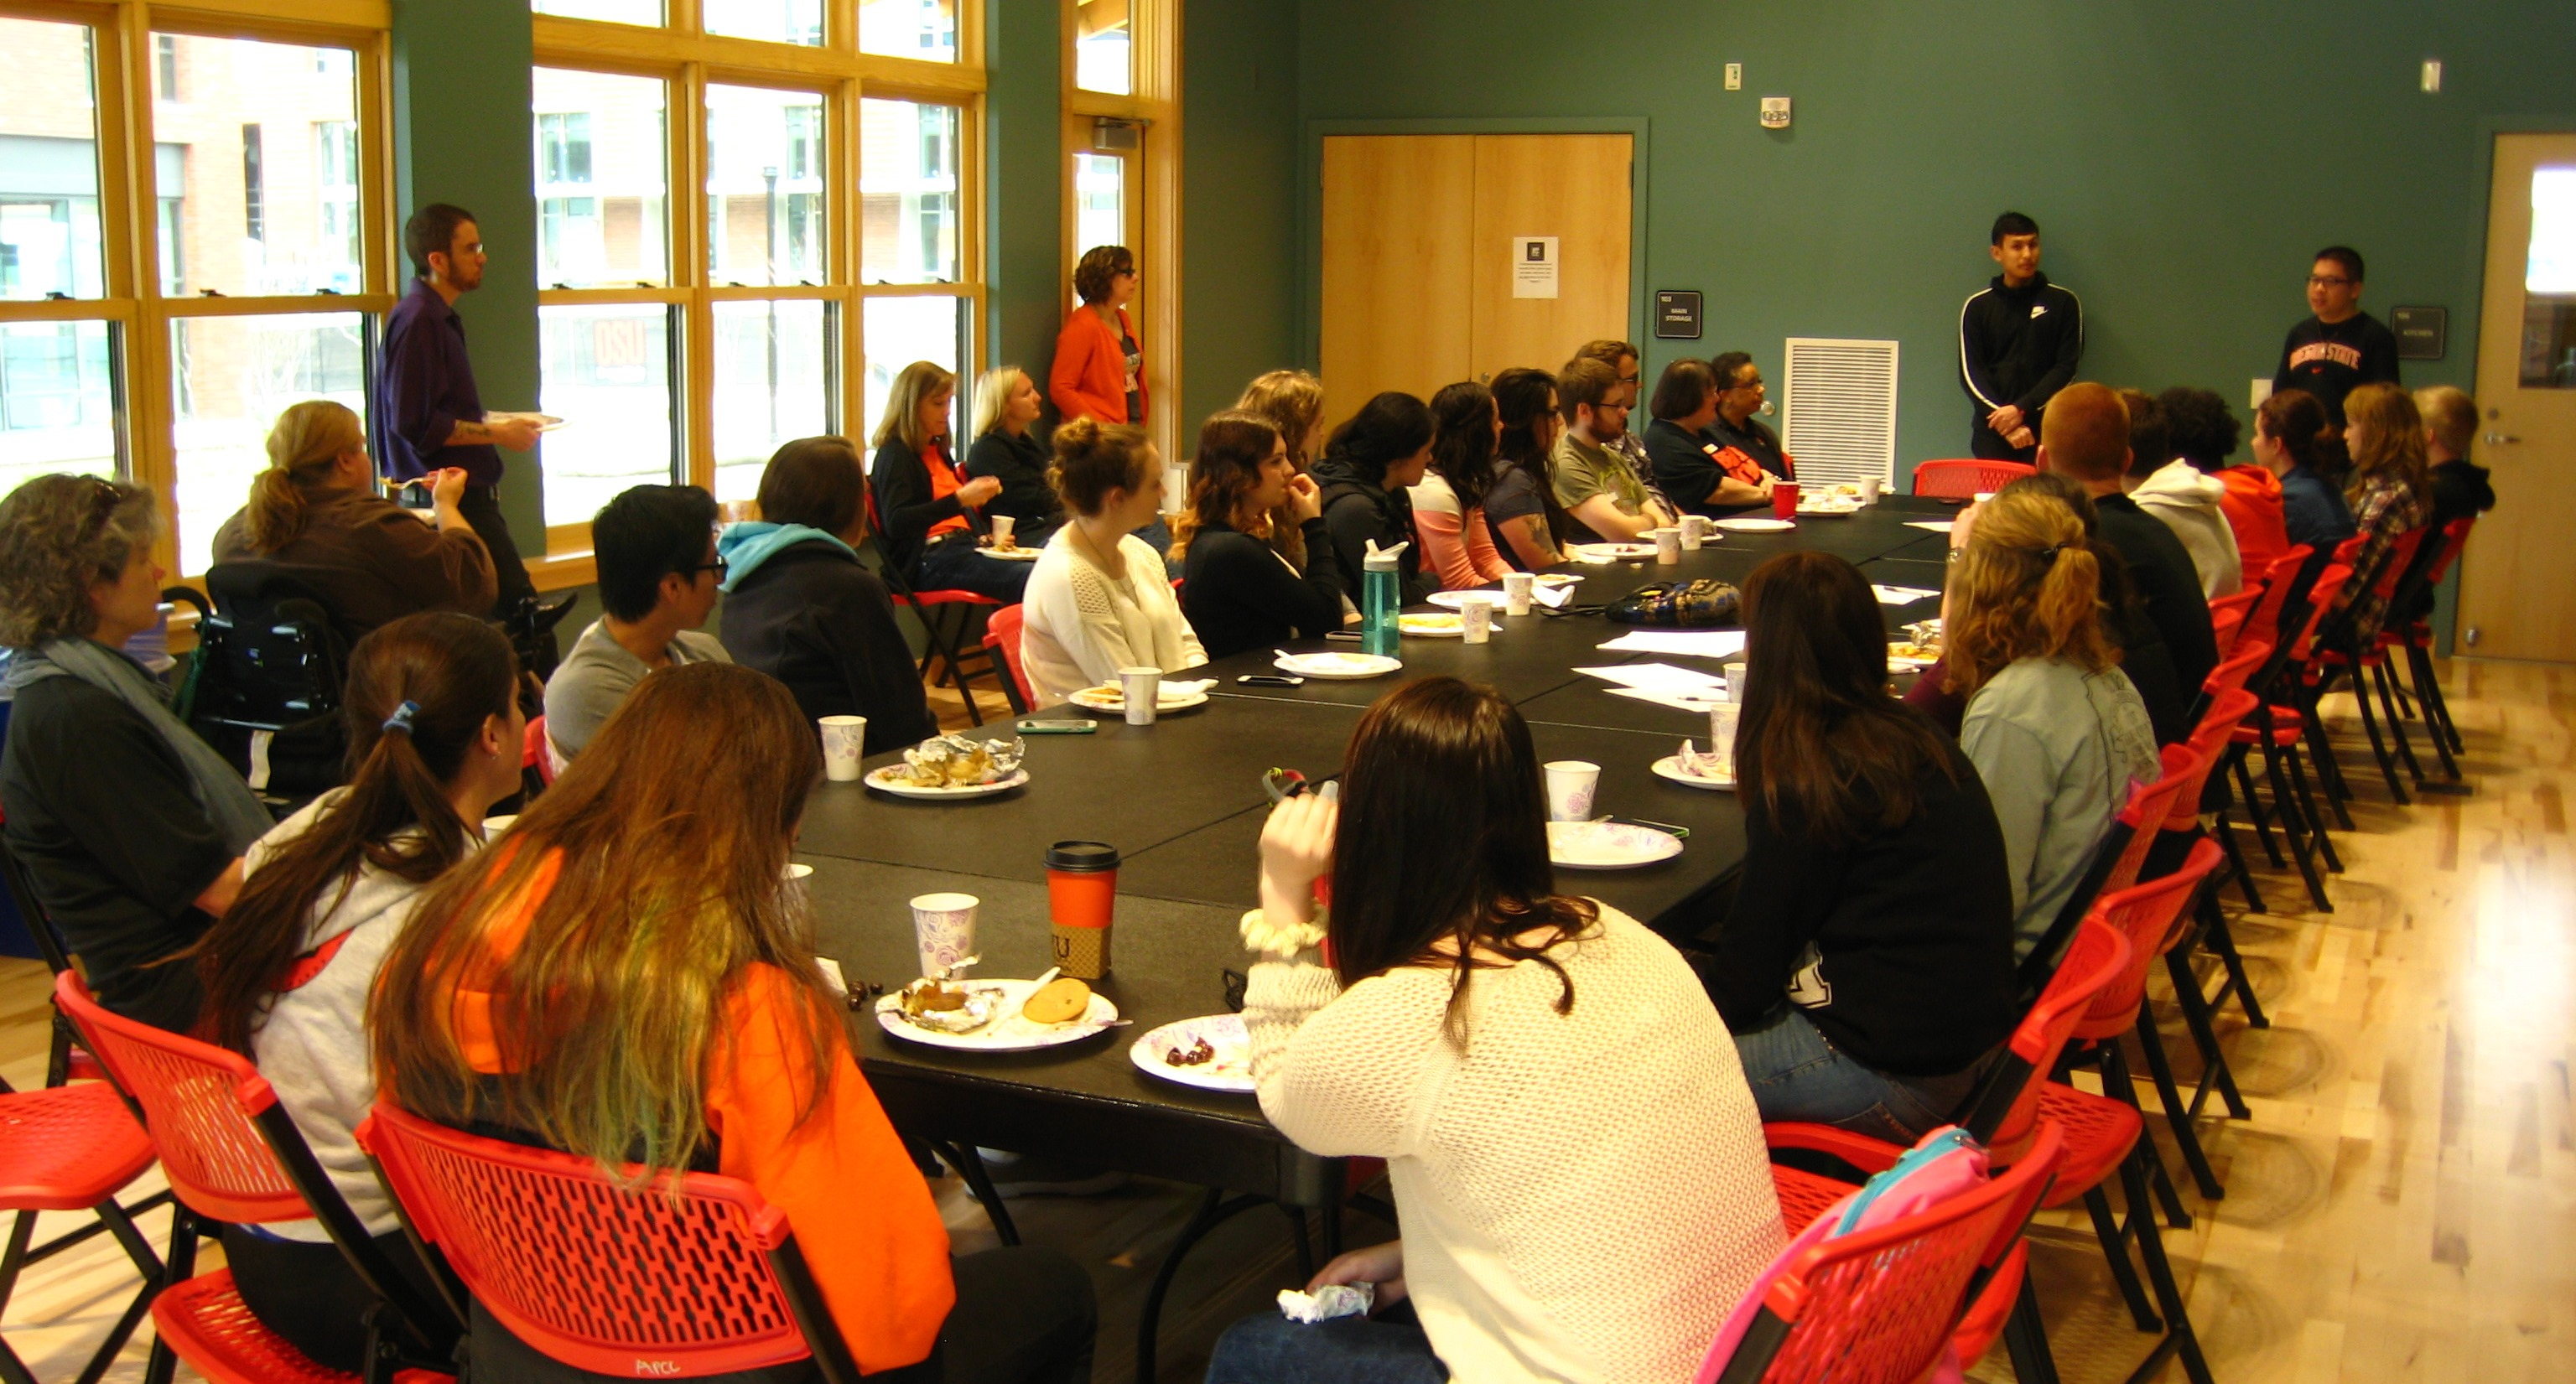 DAS Student workers and staff listen to a presentation at the new Asian Pacific Cultural Center